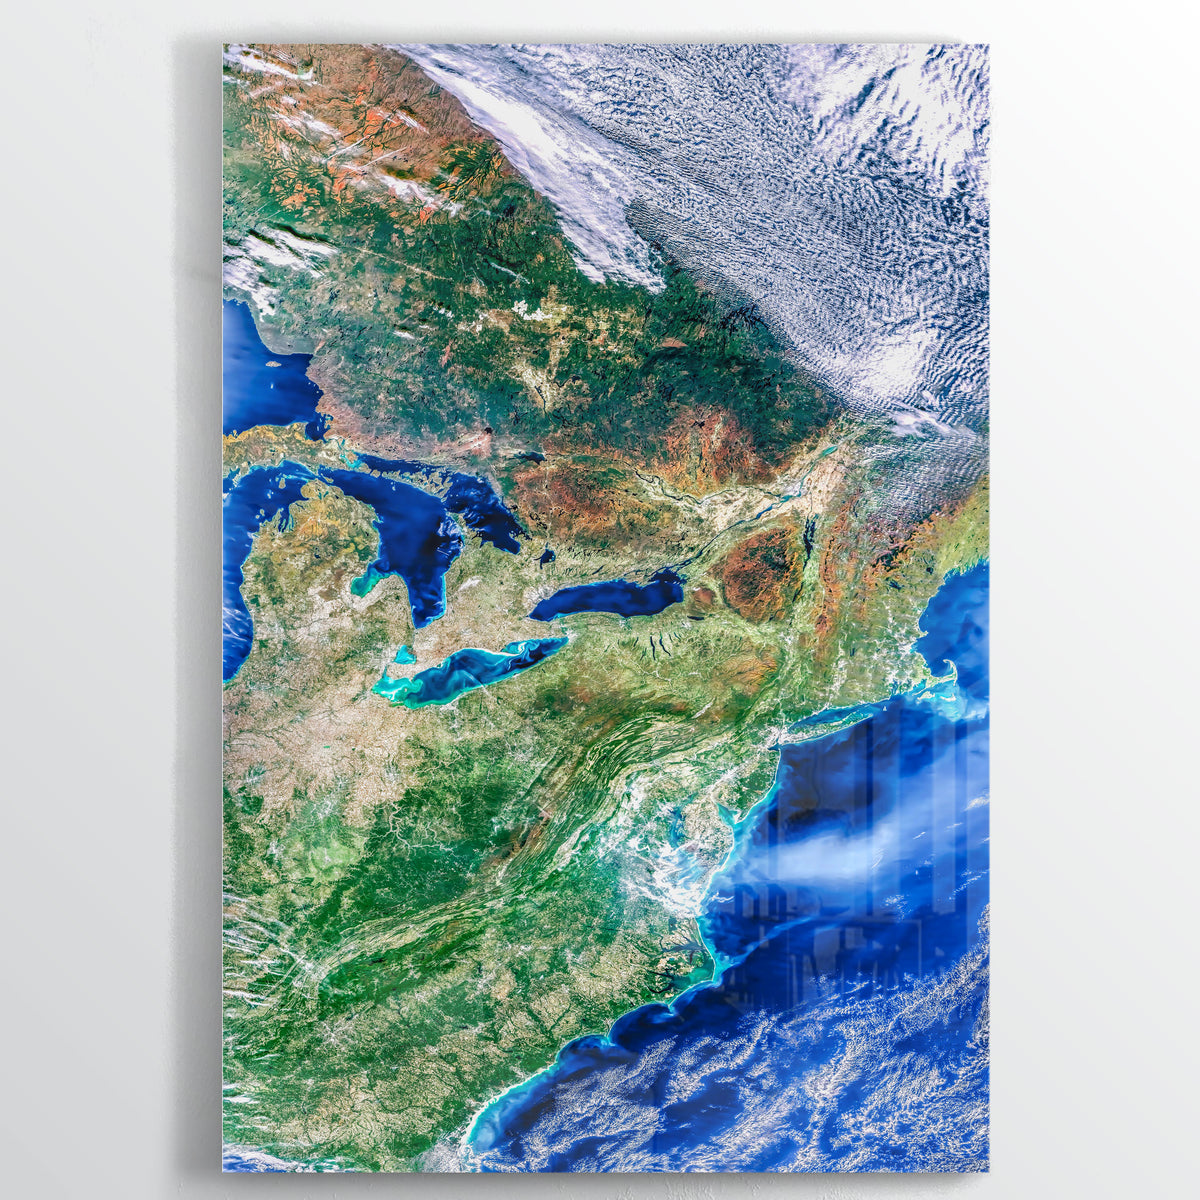 Northeast America Earth Photography - Floating Acrylic Art